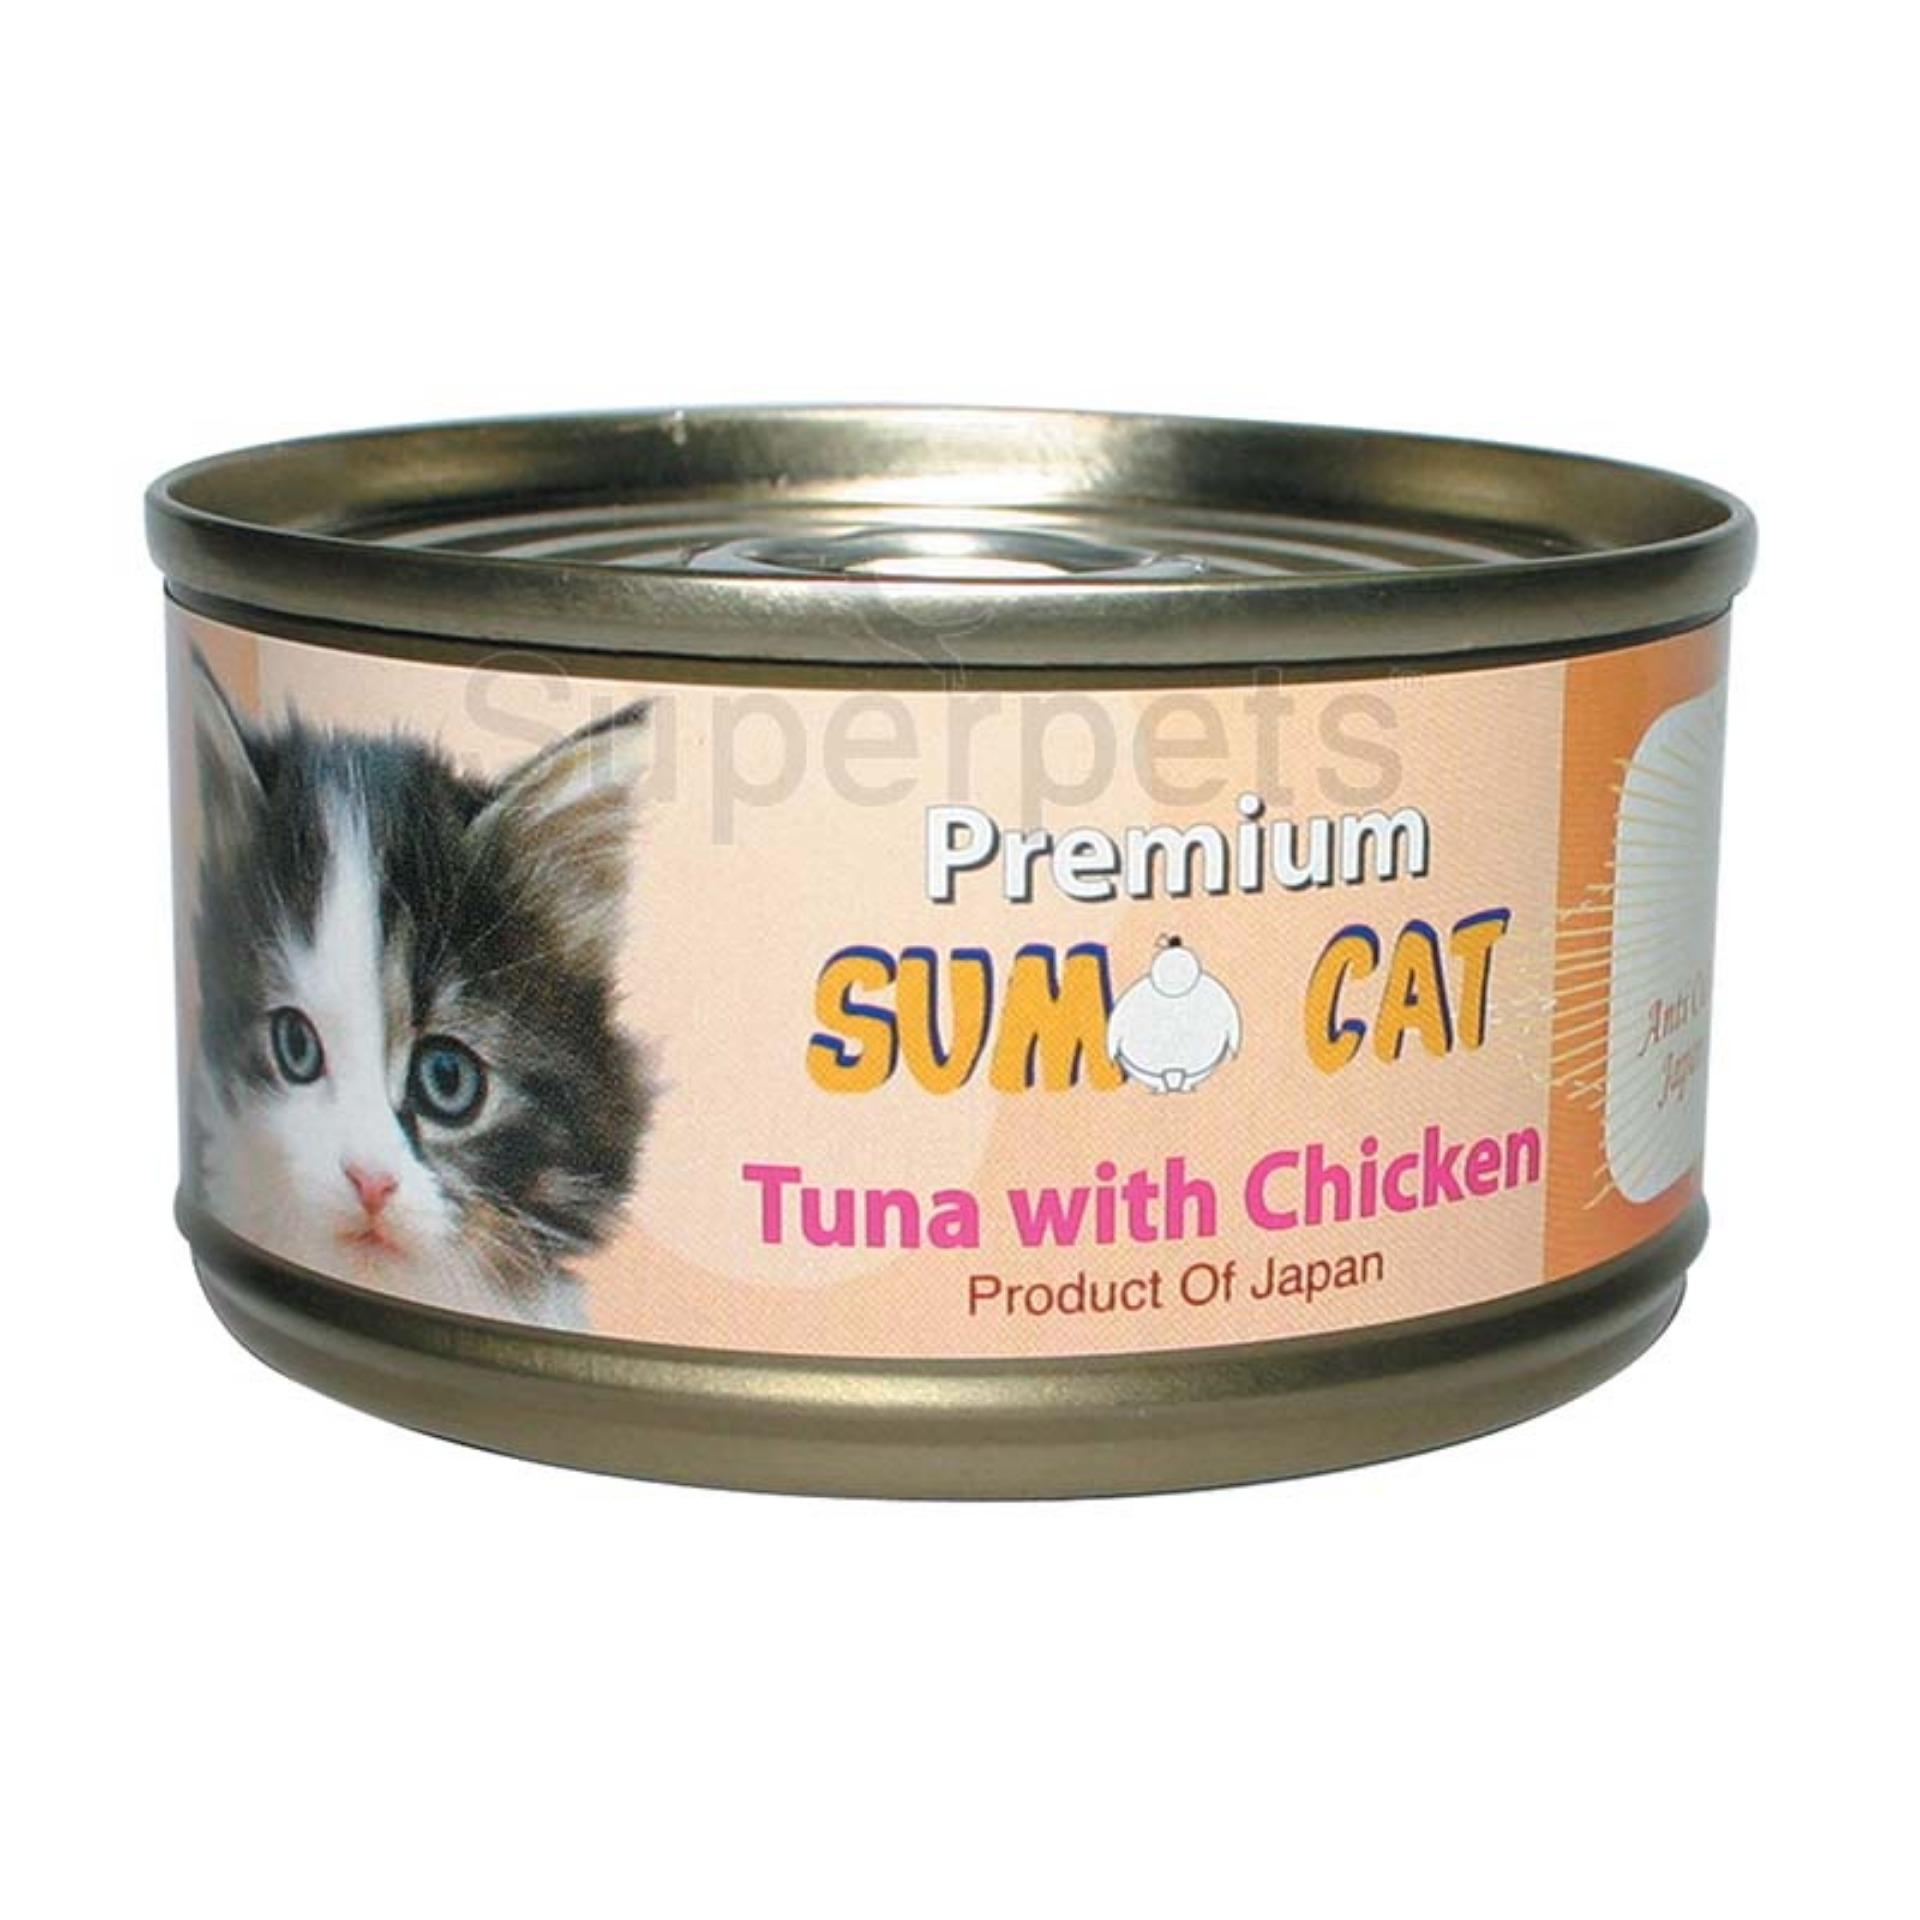 Sumo Cat Tuna With Chicken 80G 24Pcs Price Comparison